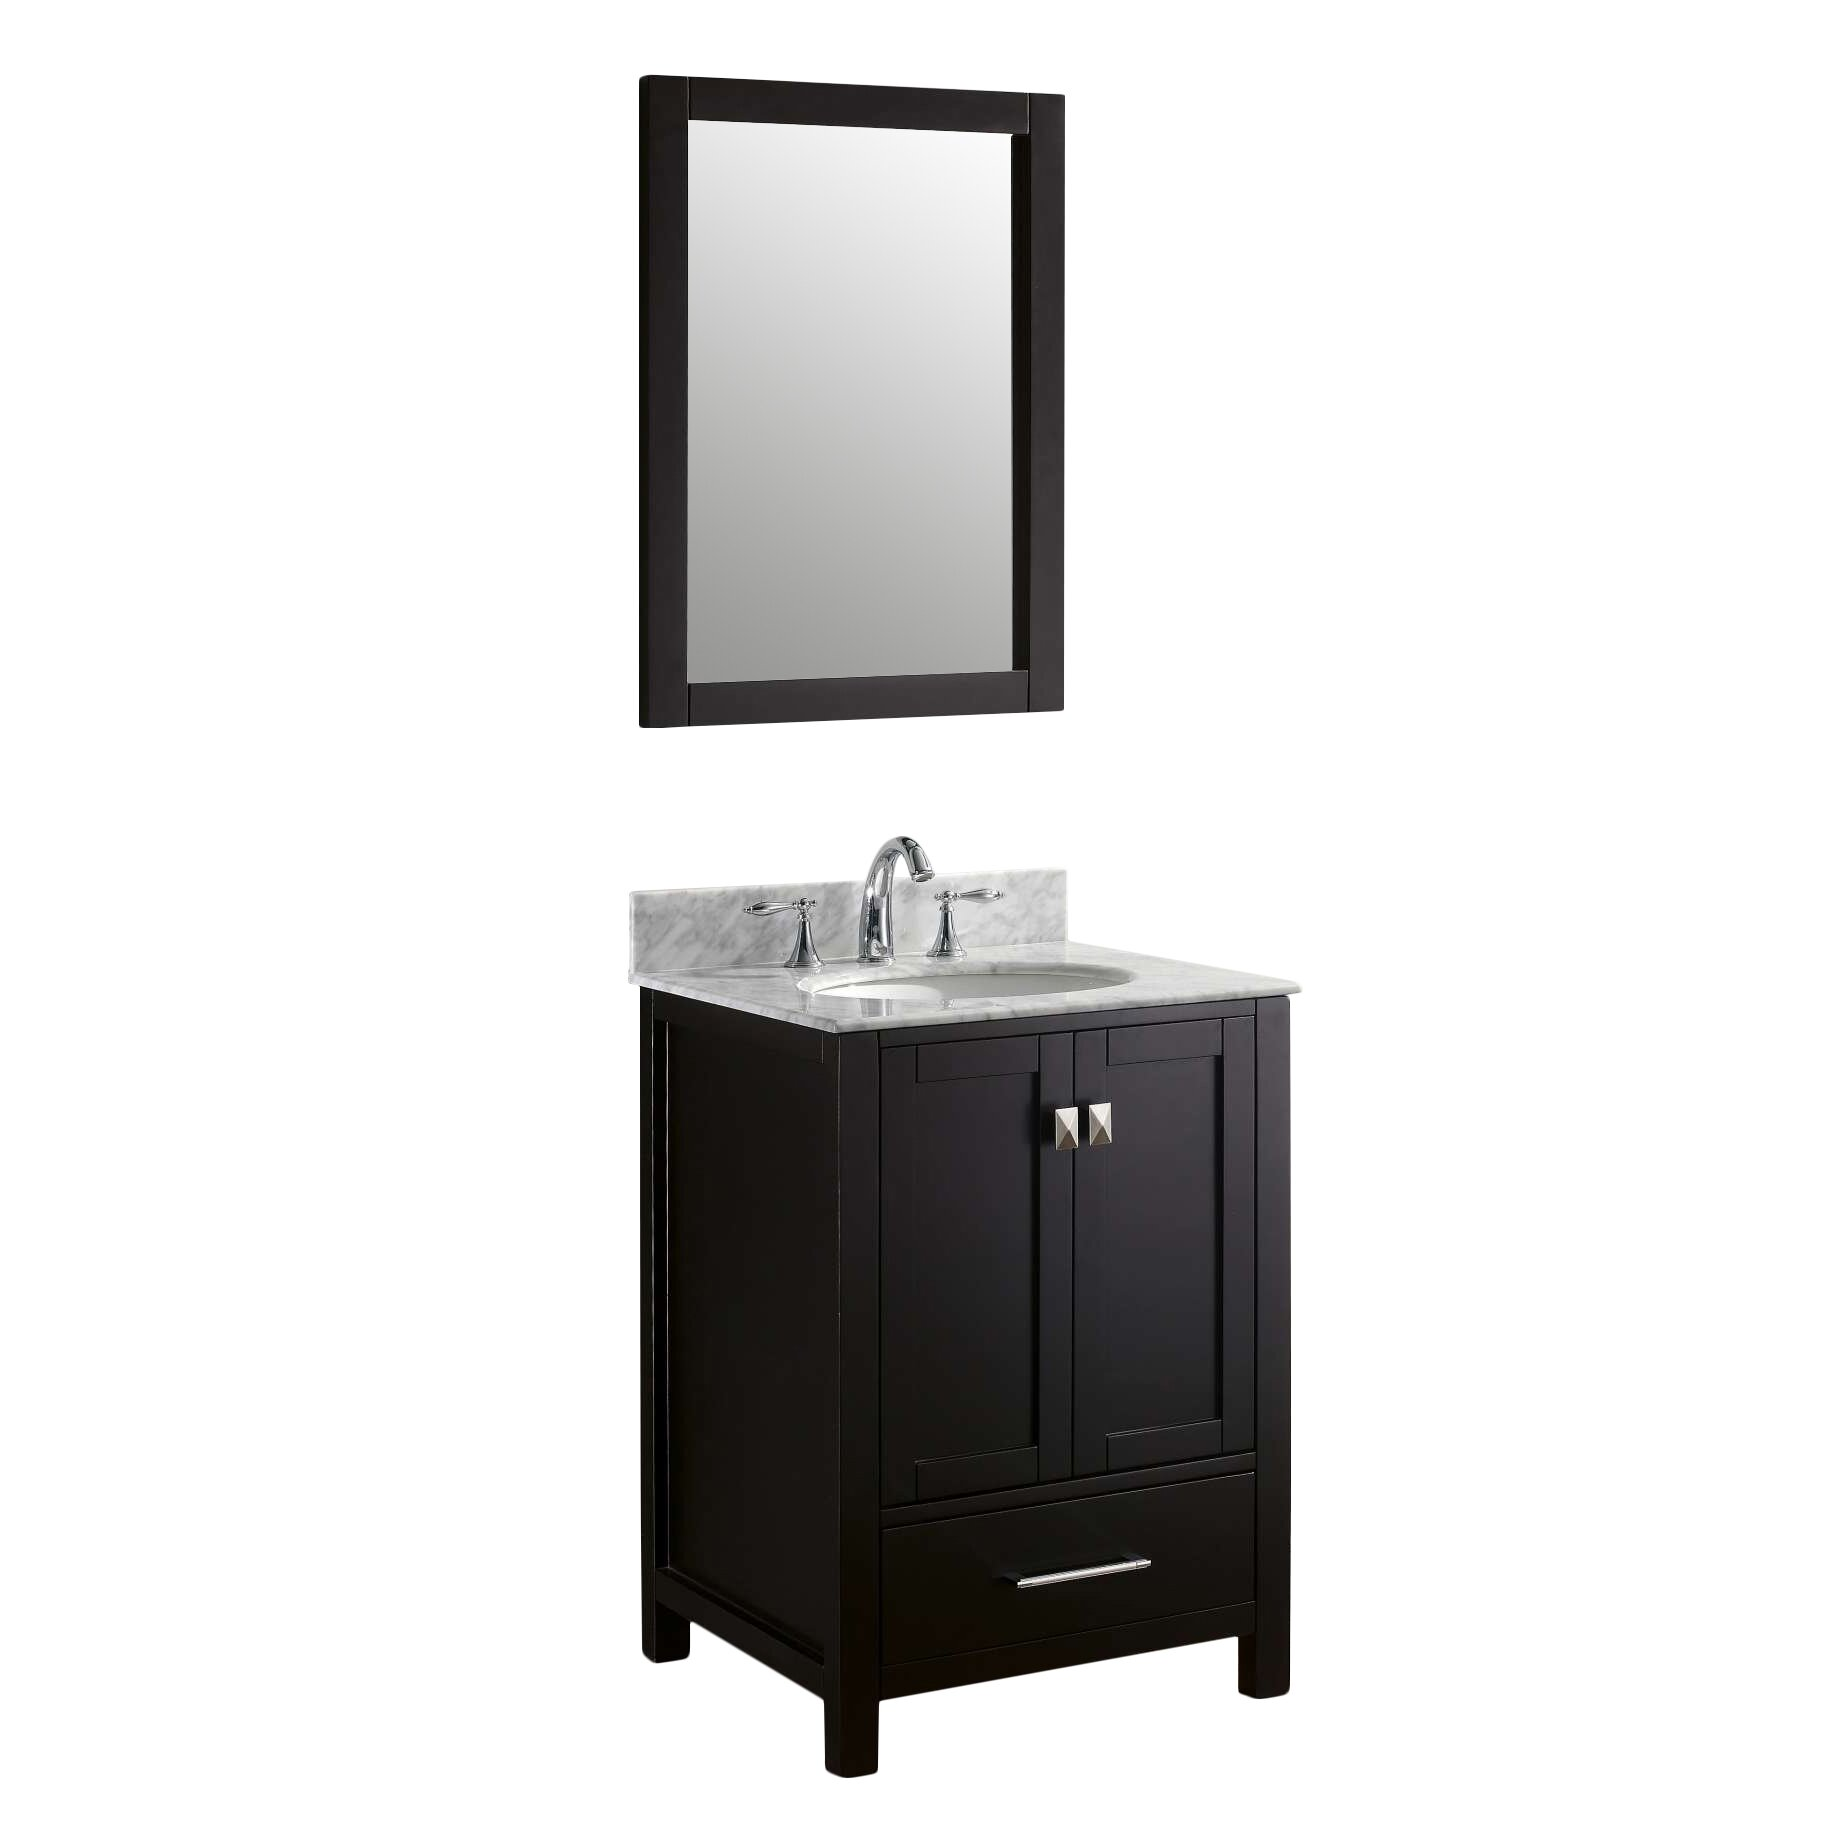 virtu caroline avenue 24 8 quot single bathroom vanity set